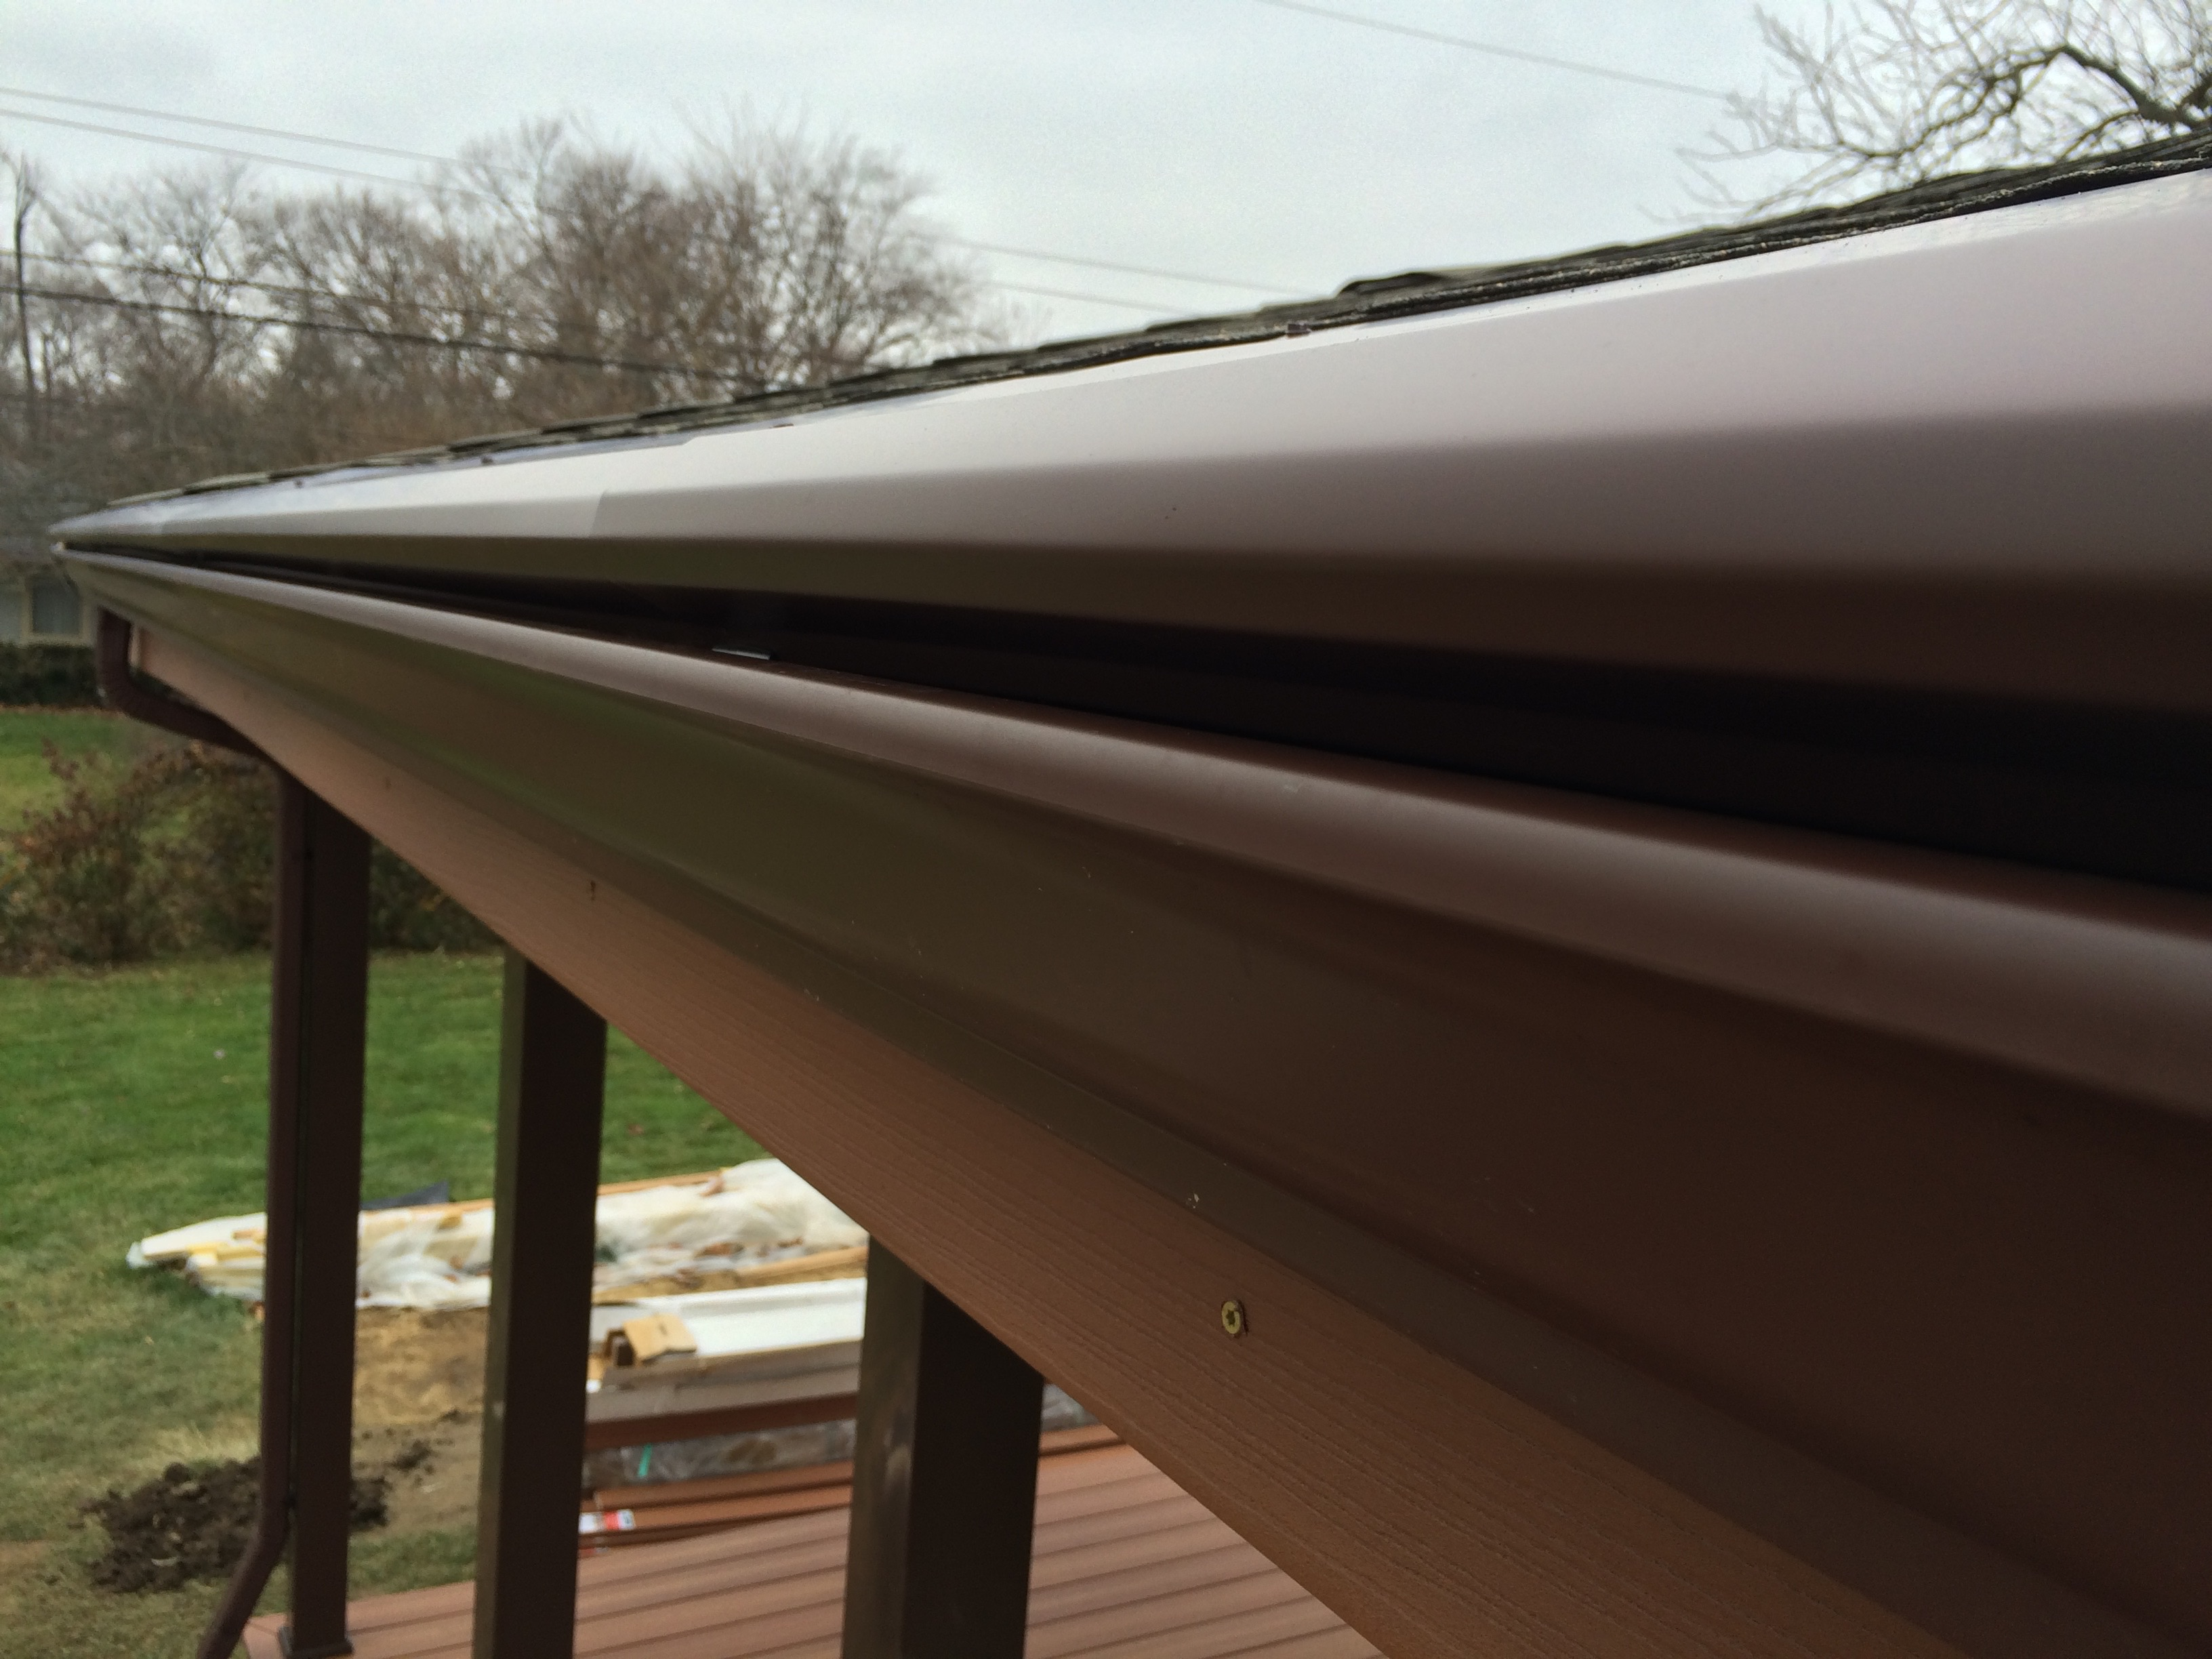 Best gutter guard: Which gutter guard is best for your home?